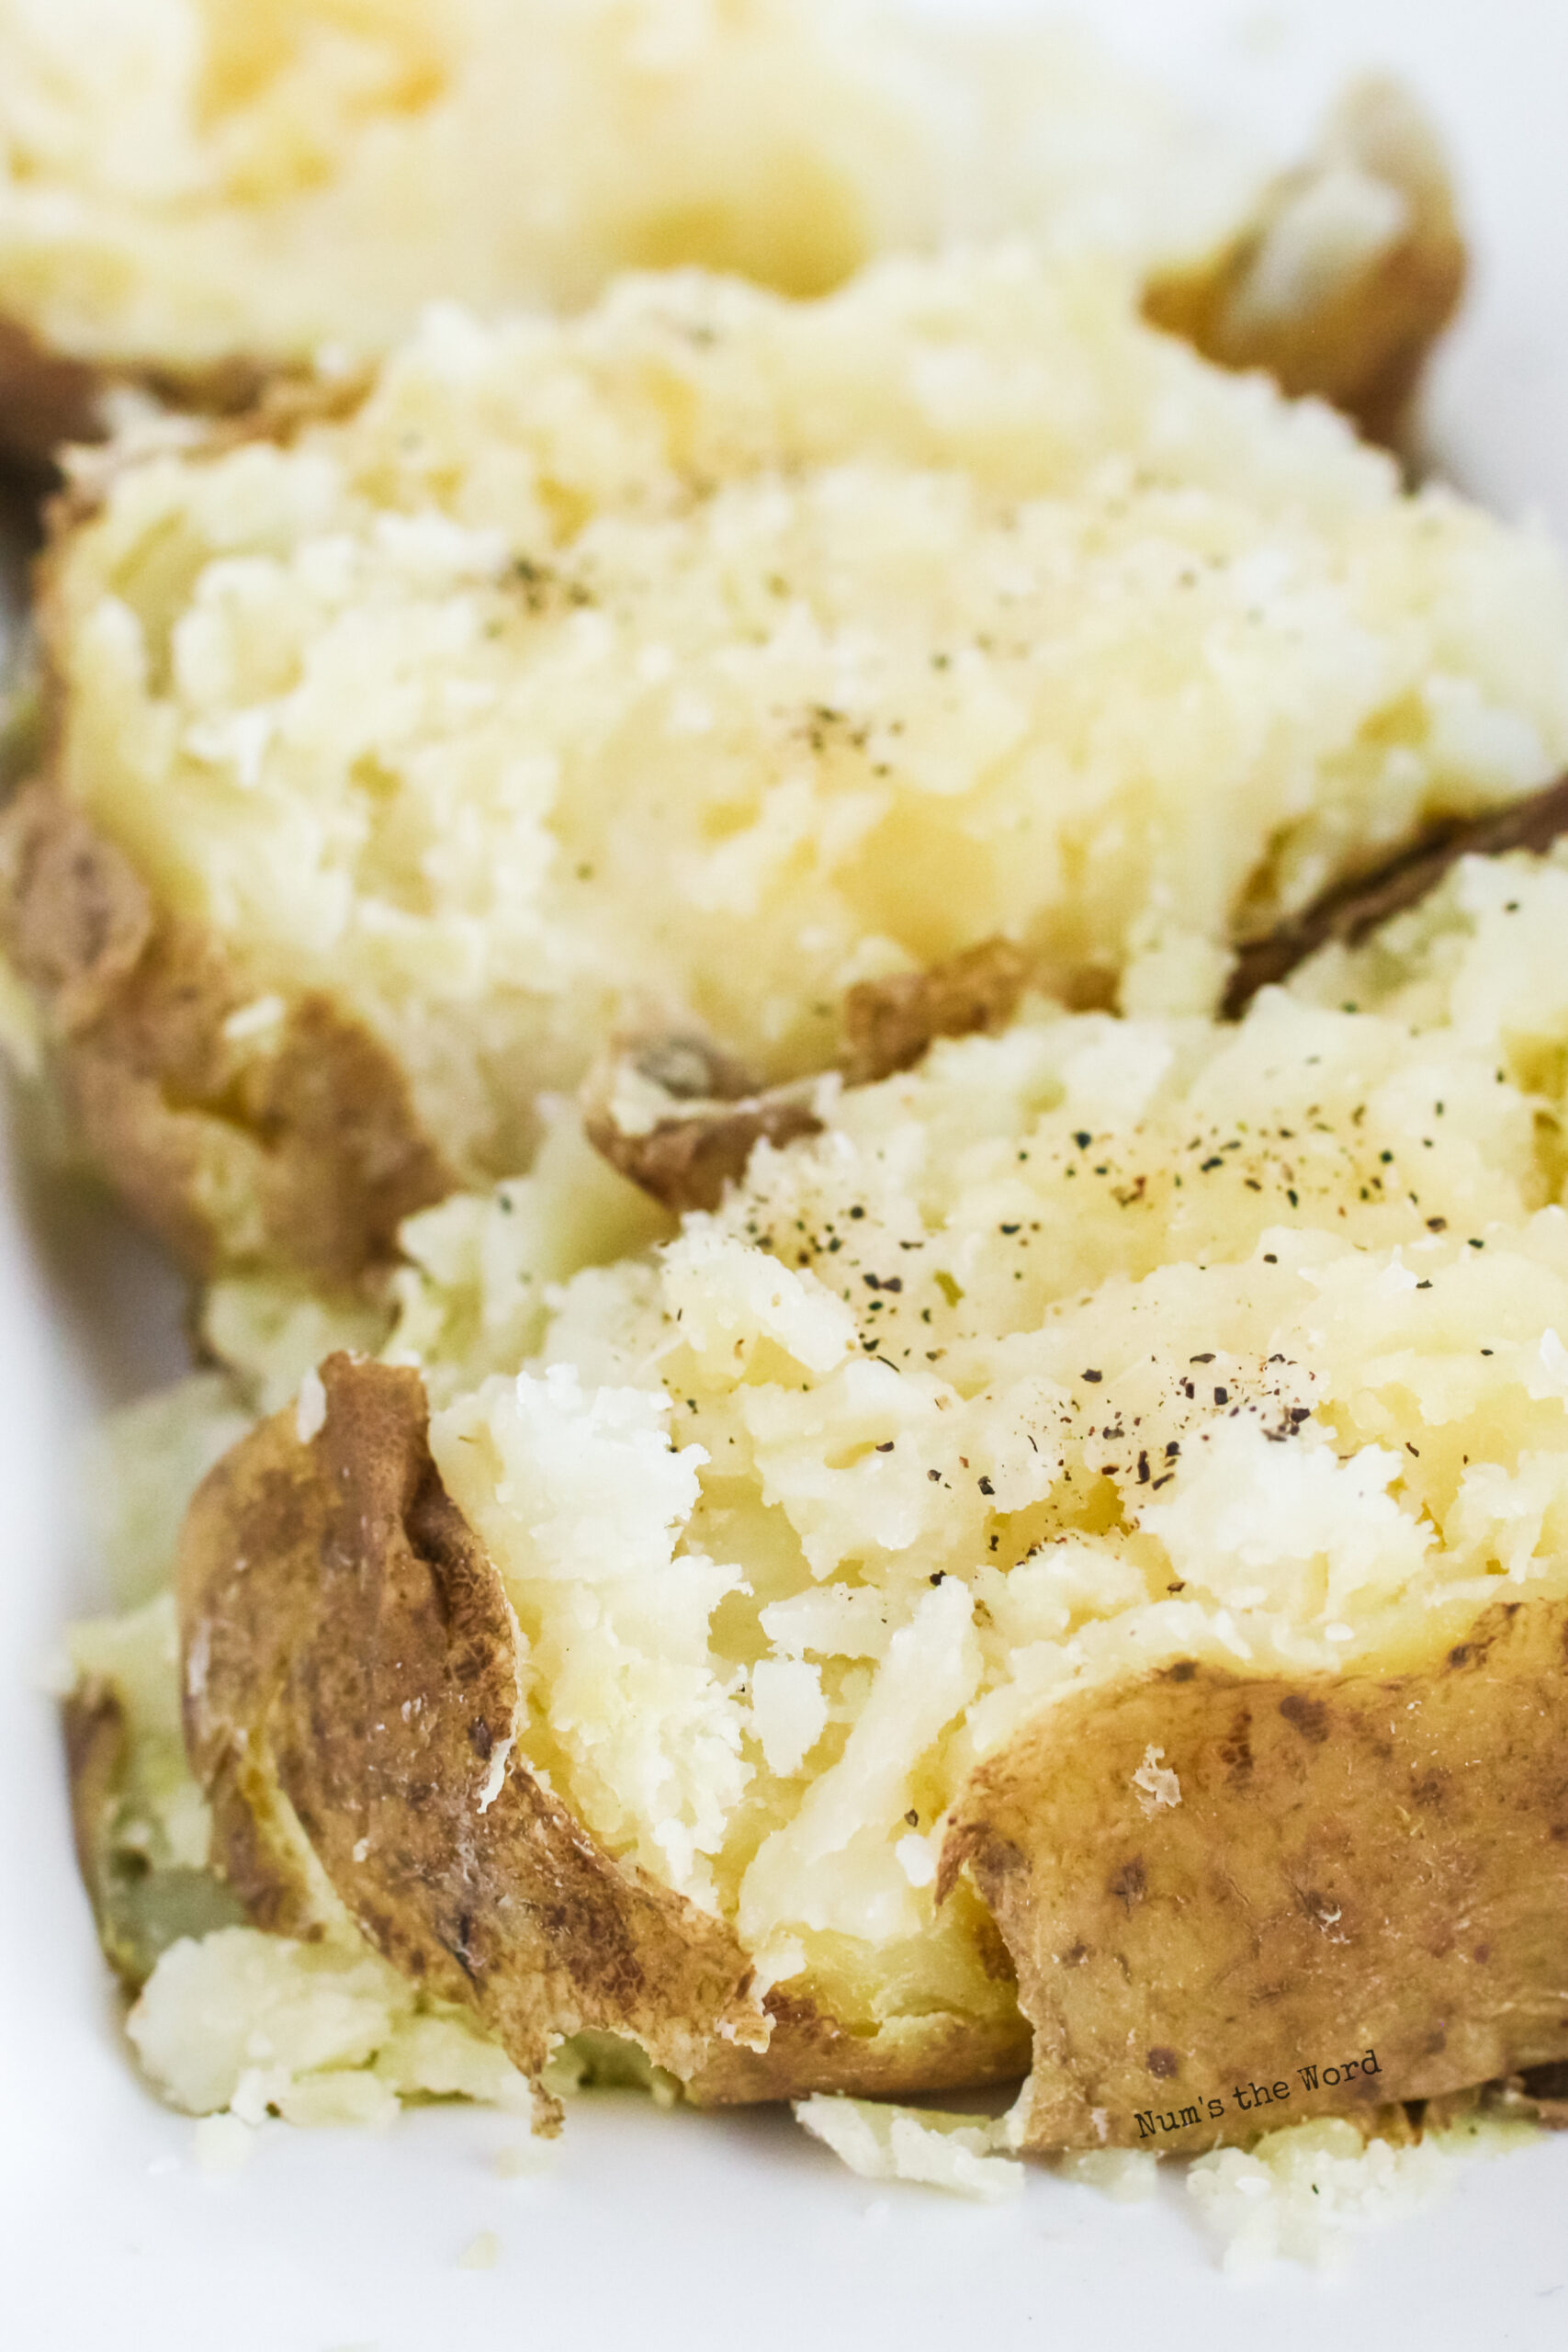 close up of two baked potatoes on platter. Closest one has salt and pepper on it.